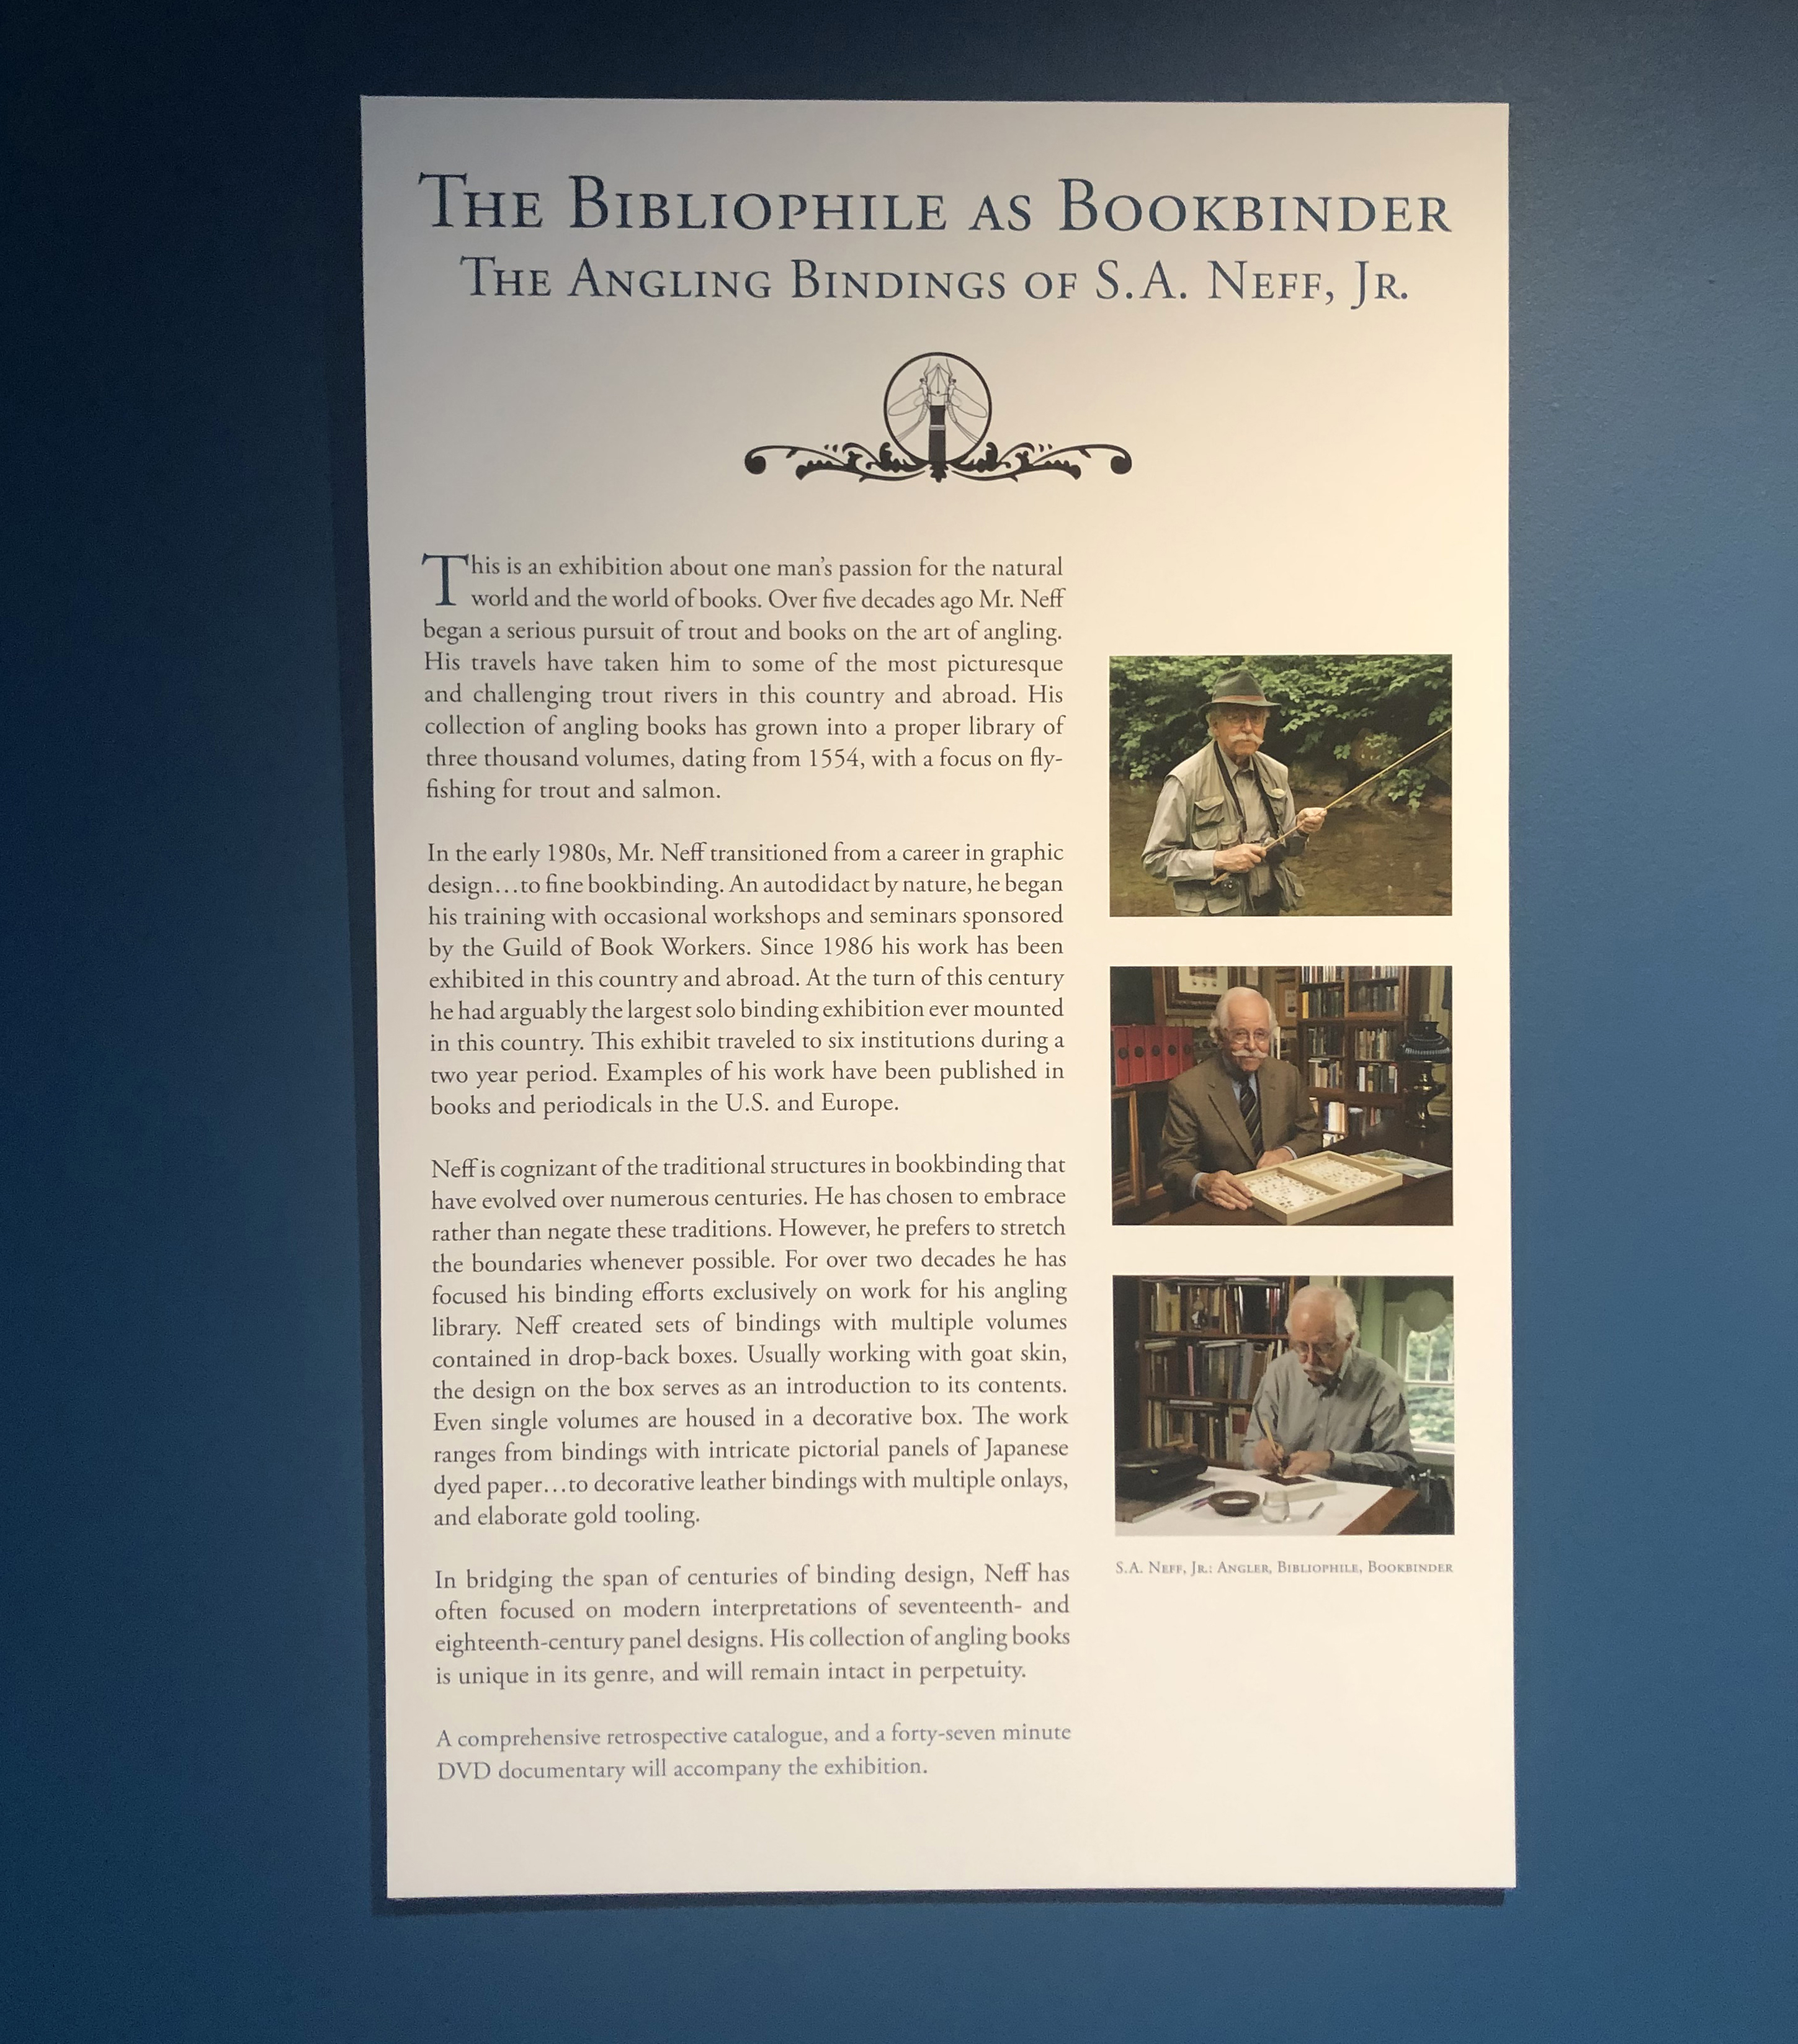 The Bibliophile as Bookbinder Introduction